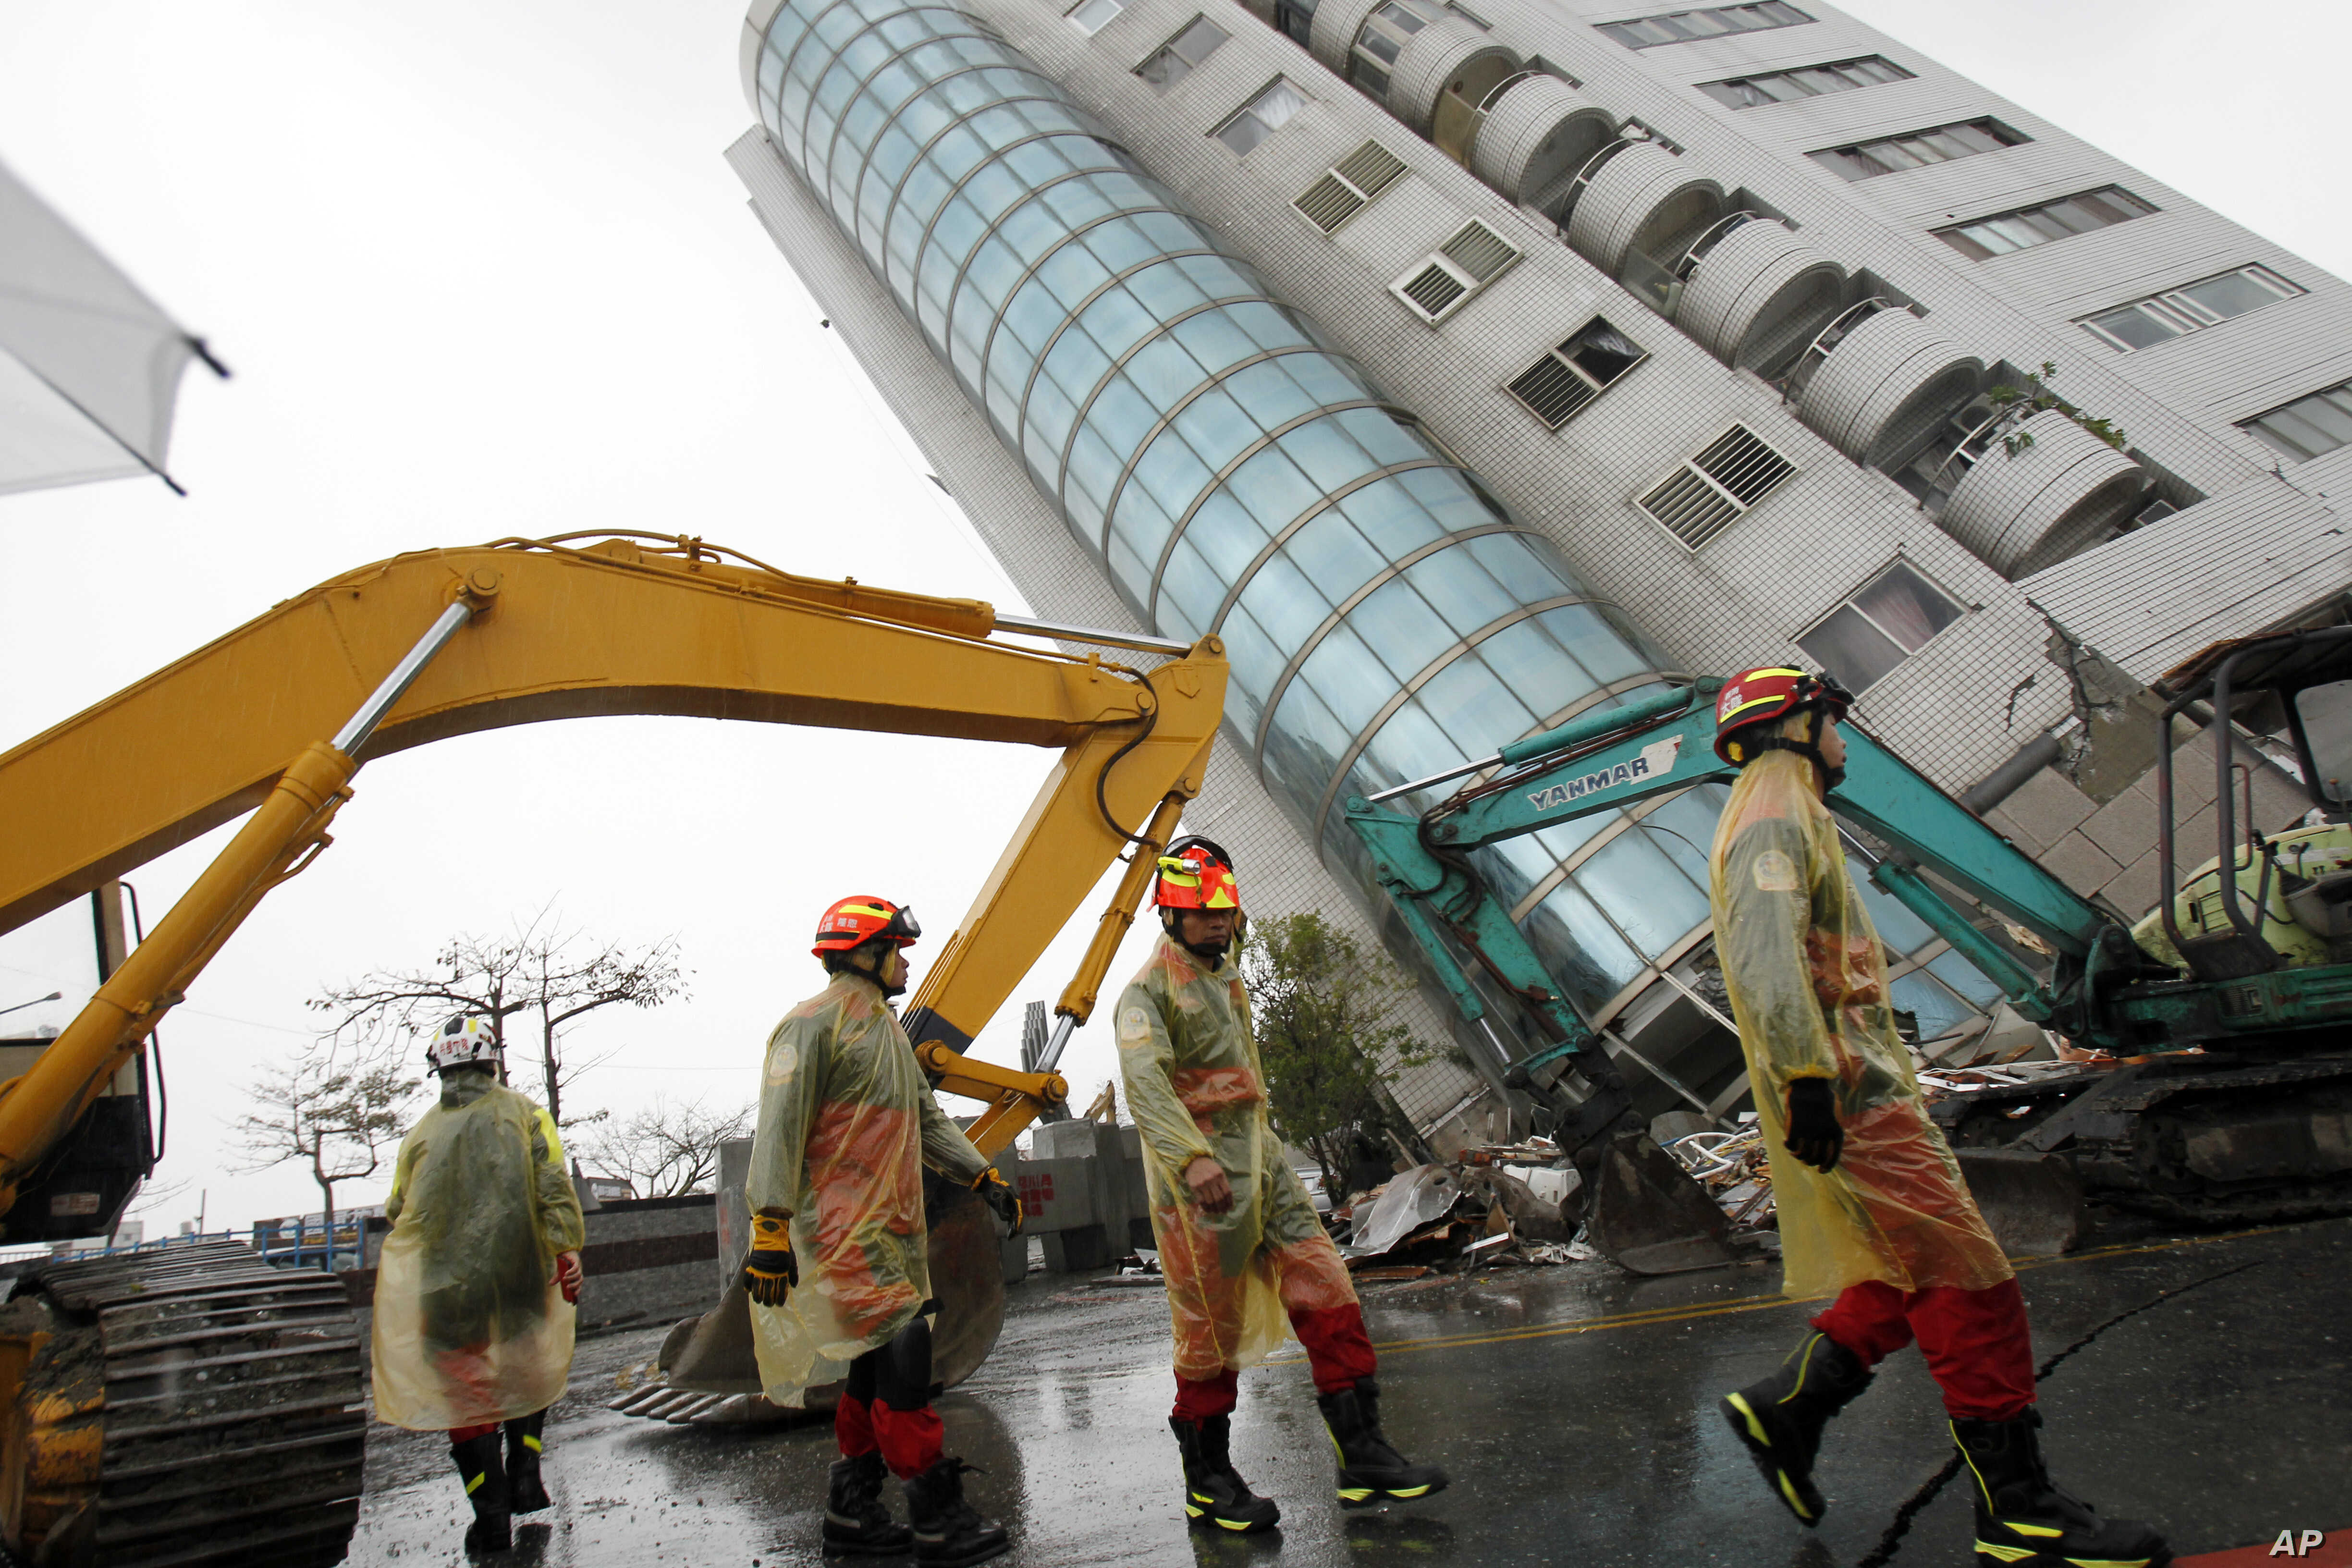 Rescuers work on a search operation at an apartment building that collapsed after a strong earthquake in Hualien County, eastern Taiwan, Feb. 7, 2018. A magnitude 6.4 earthquake struck late Tuesday night caused several buildings to cave in and tilt d